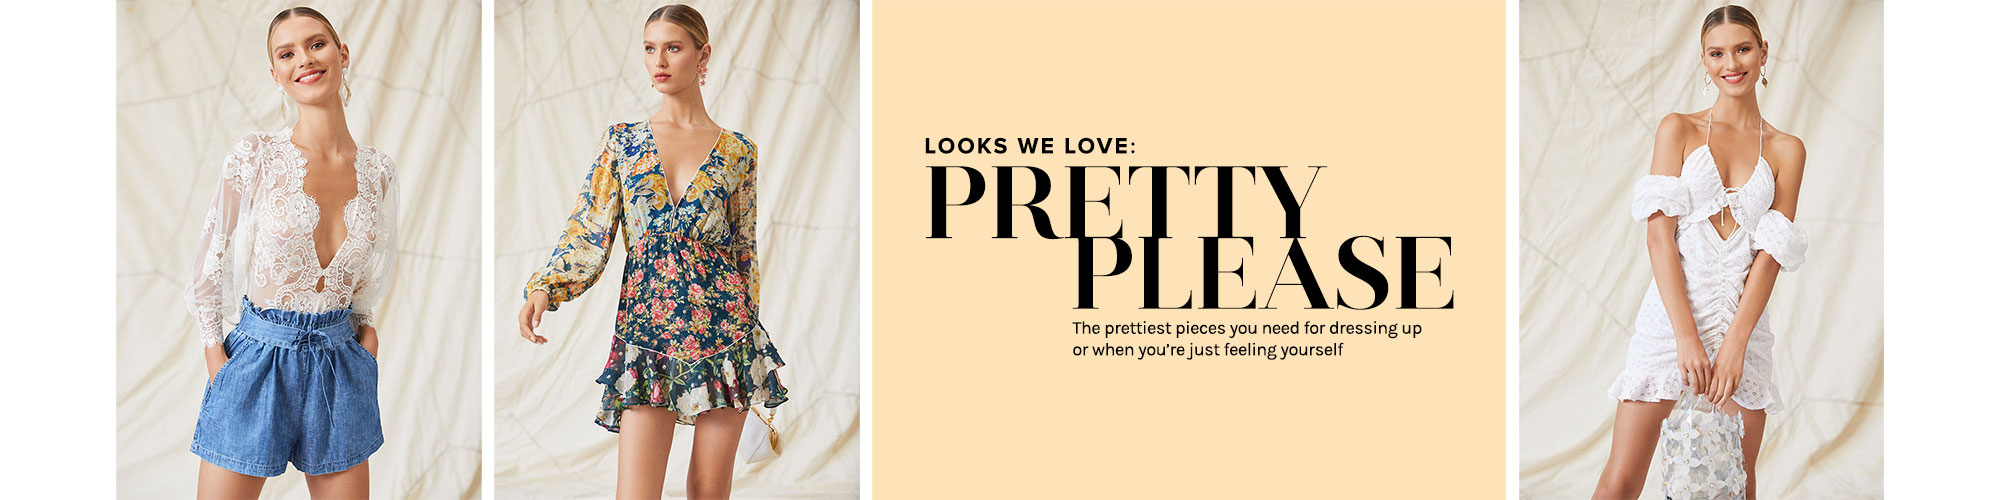 Looks We Love: Pretty Please. The prettiest pieces you need for dressing up or when you\u2019re just feeling yourself.